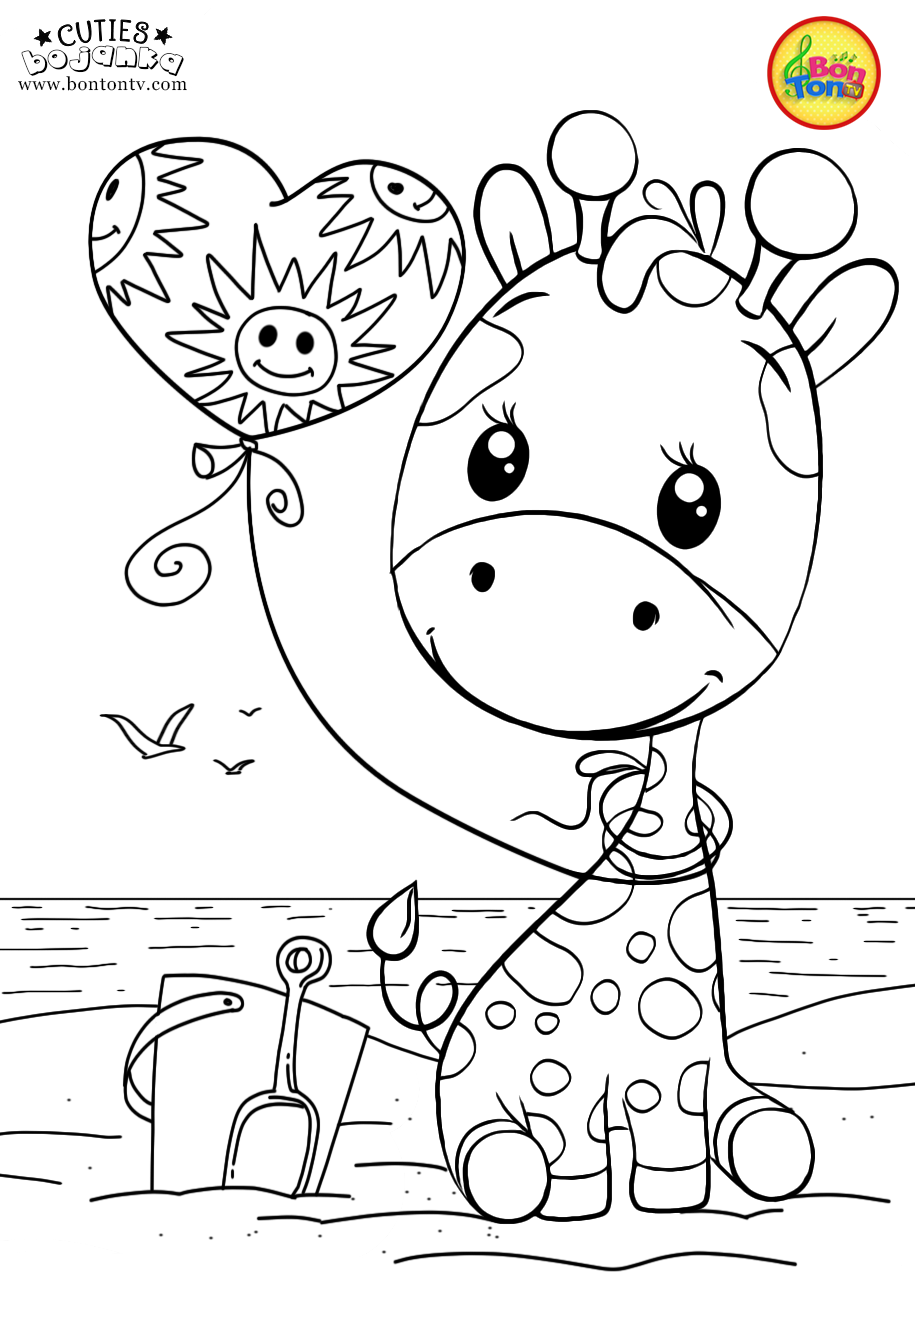 Cuties Coloring Pages For Kids Free Preschool Printables Slatkice Bojanke Cute Animal Co Giraffe Coloring Pages Cute Coloring Pages Animal Coloring Pages